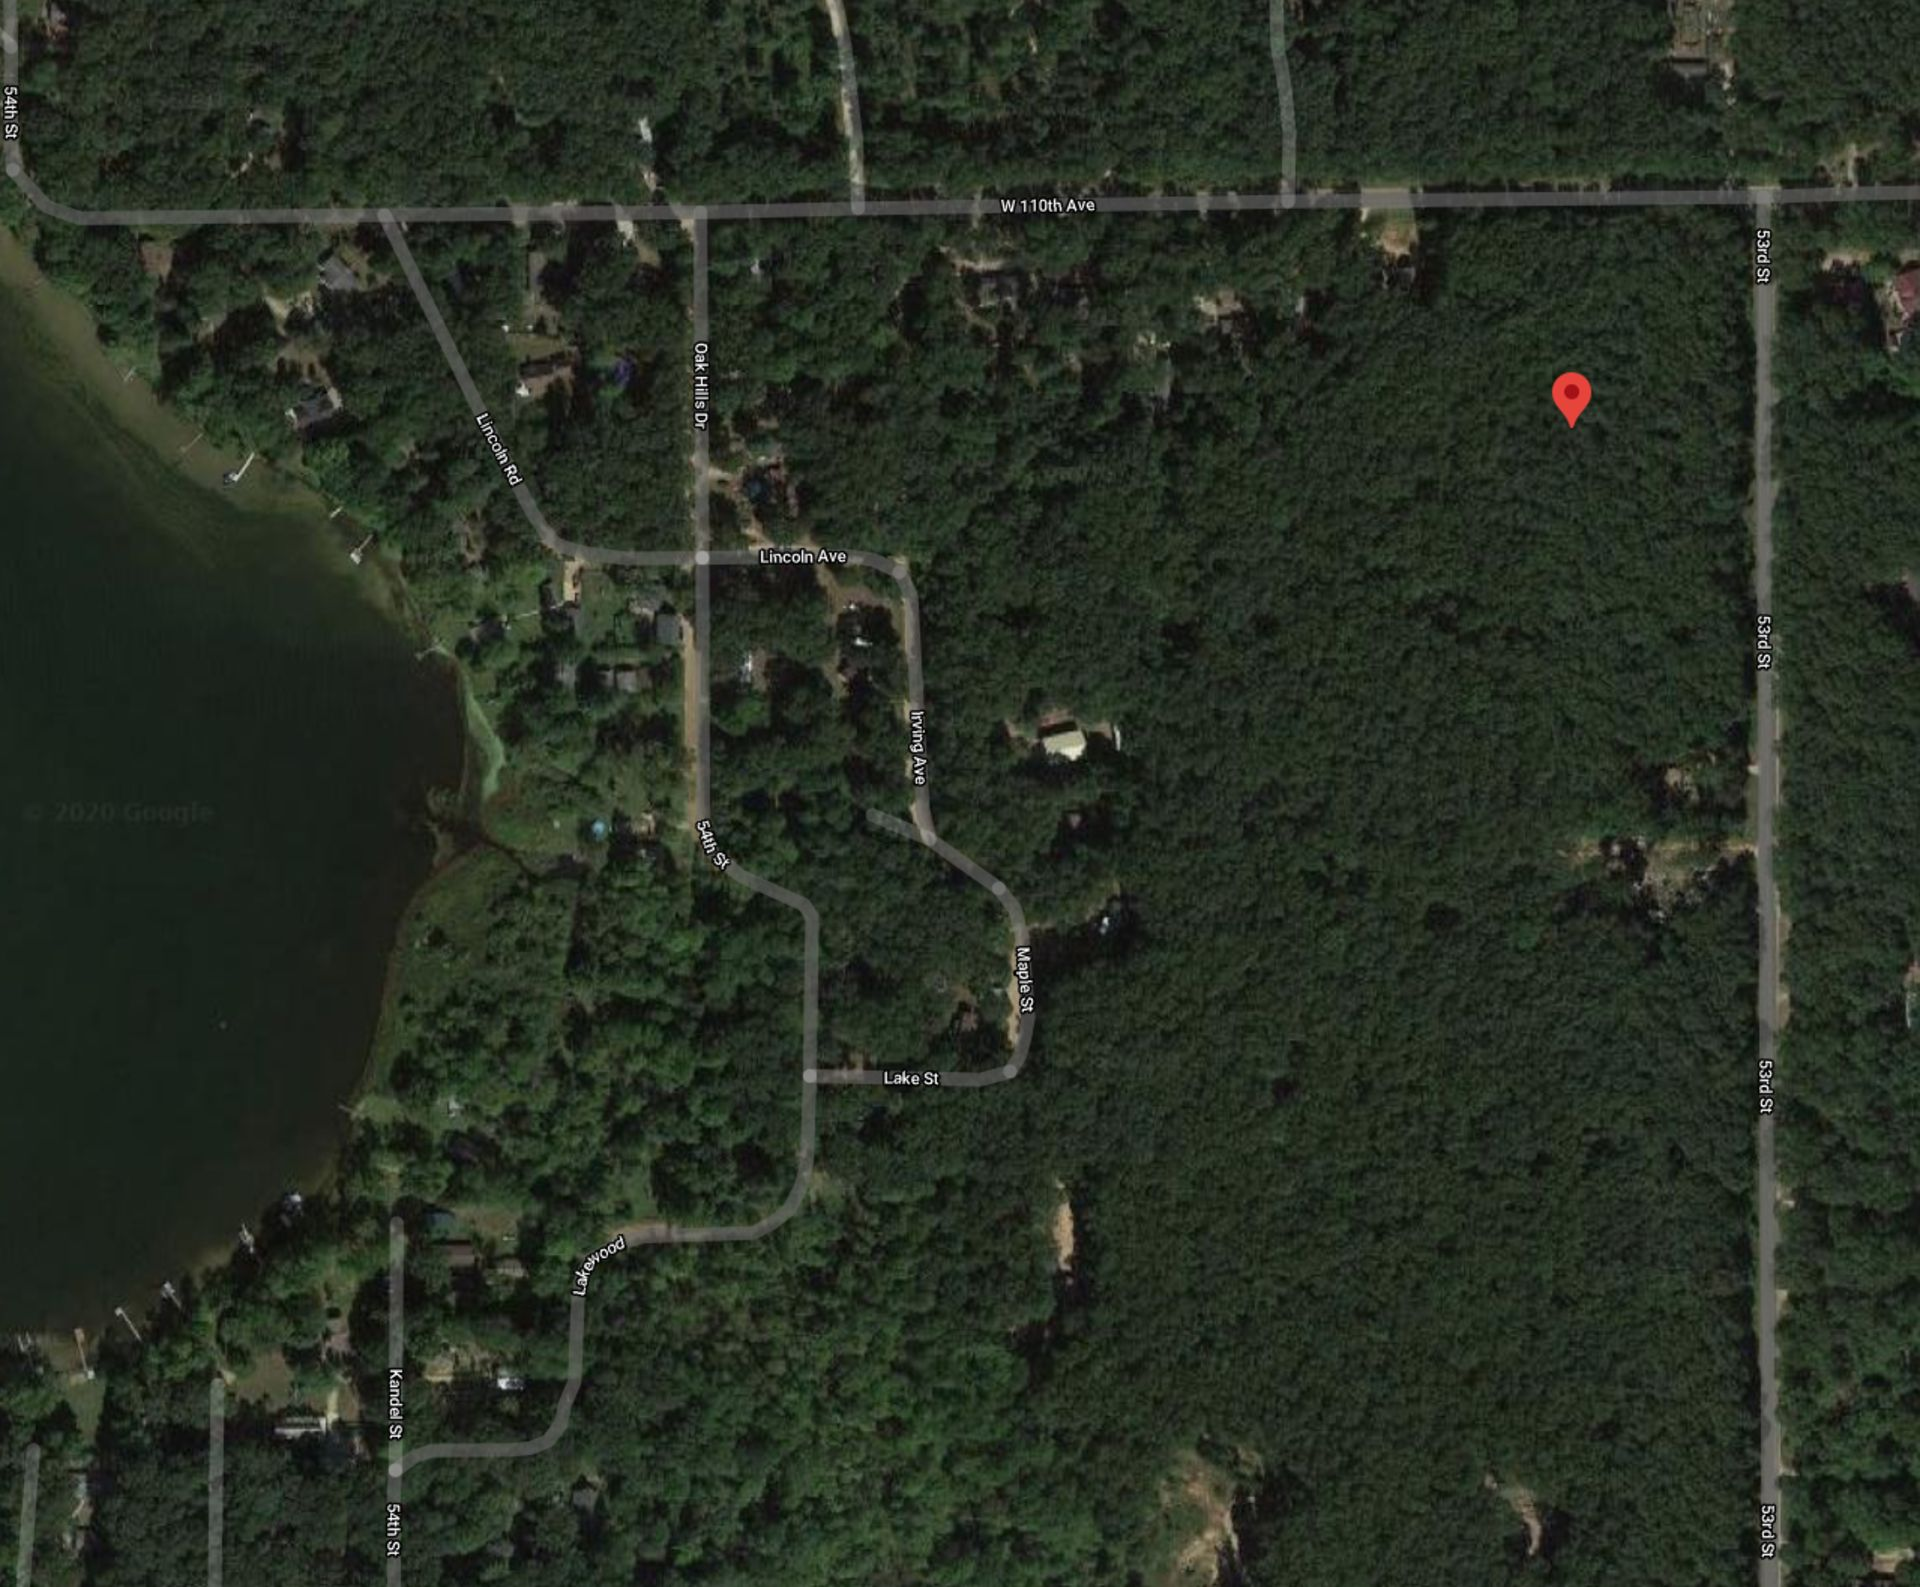 Beautiful Lot Situated in Allegann County, Michigan! - Image 5 of 5